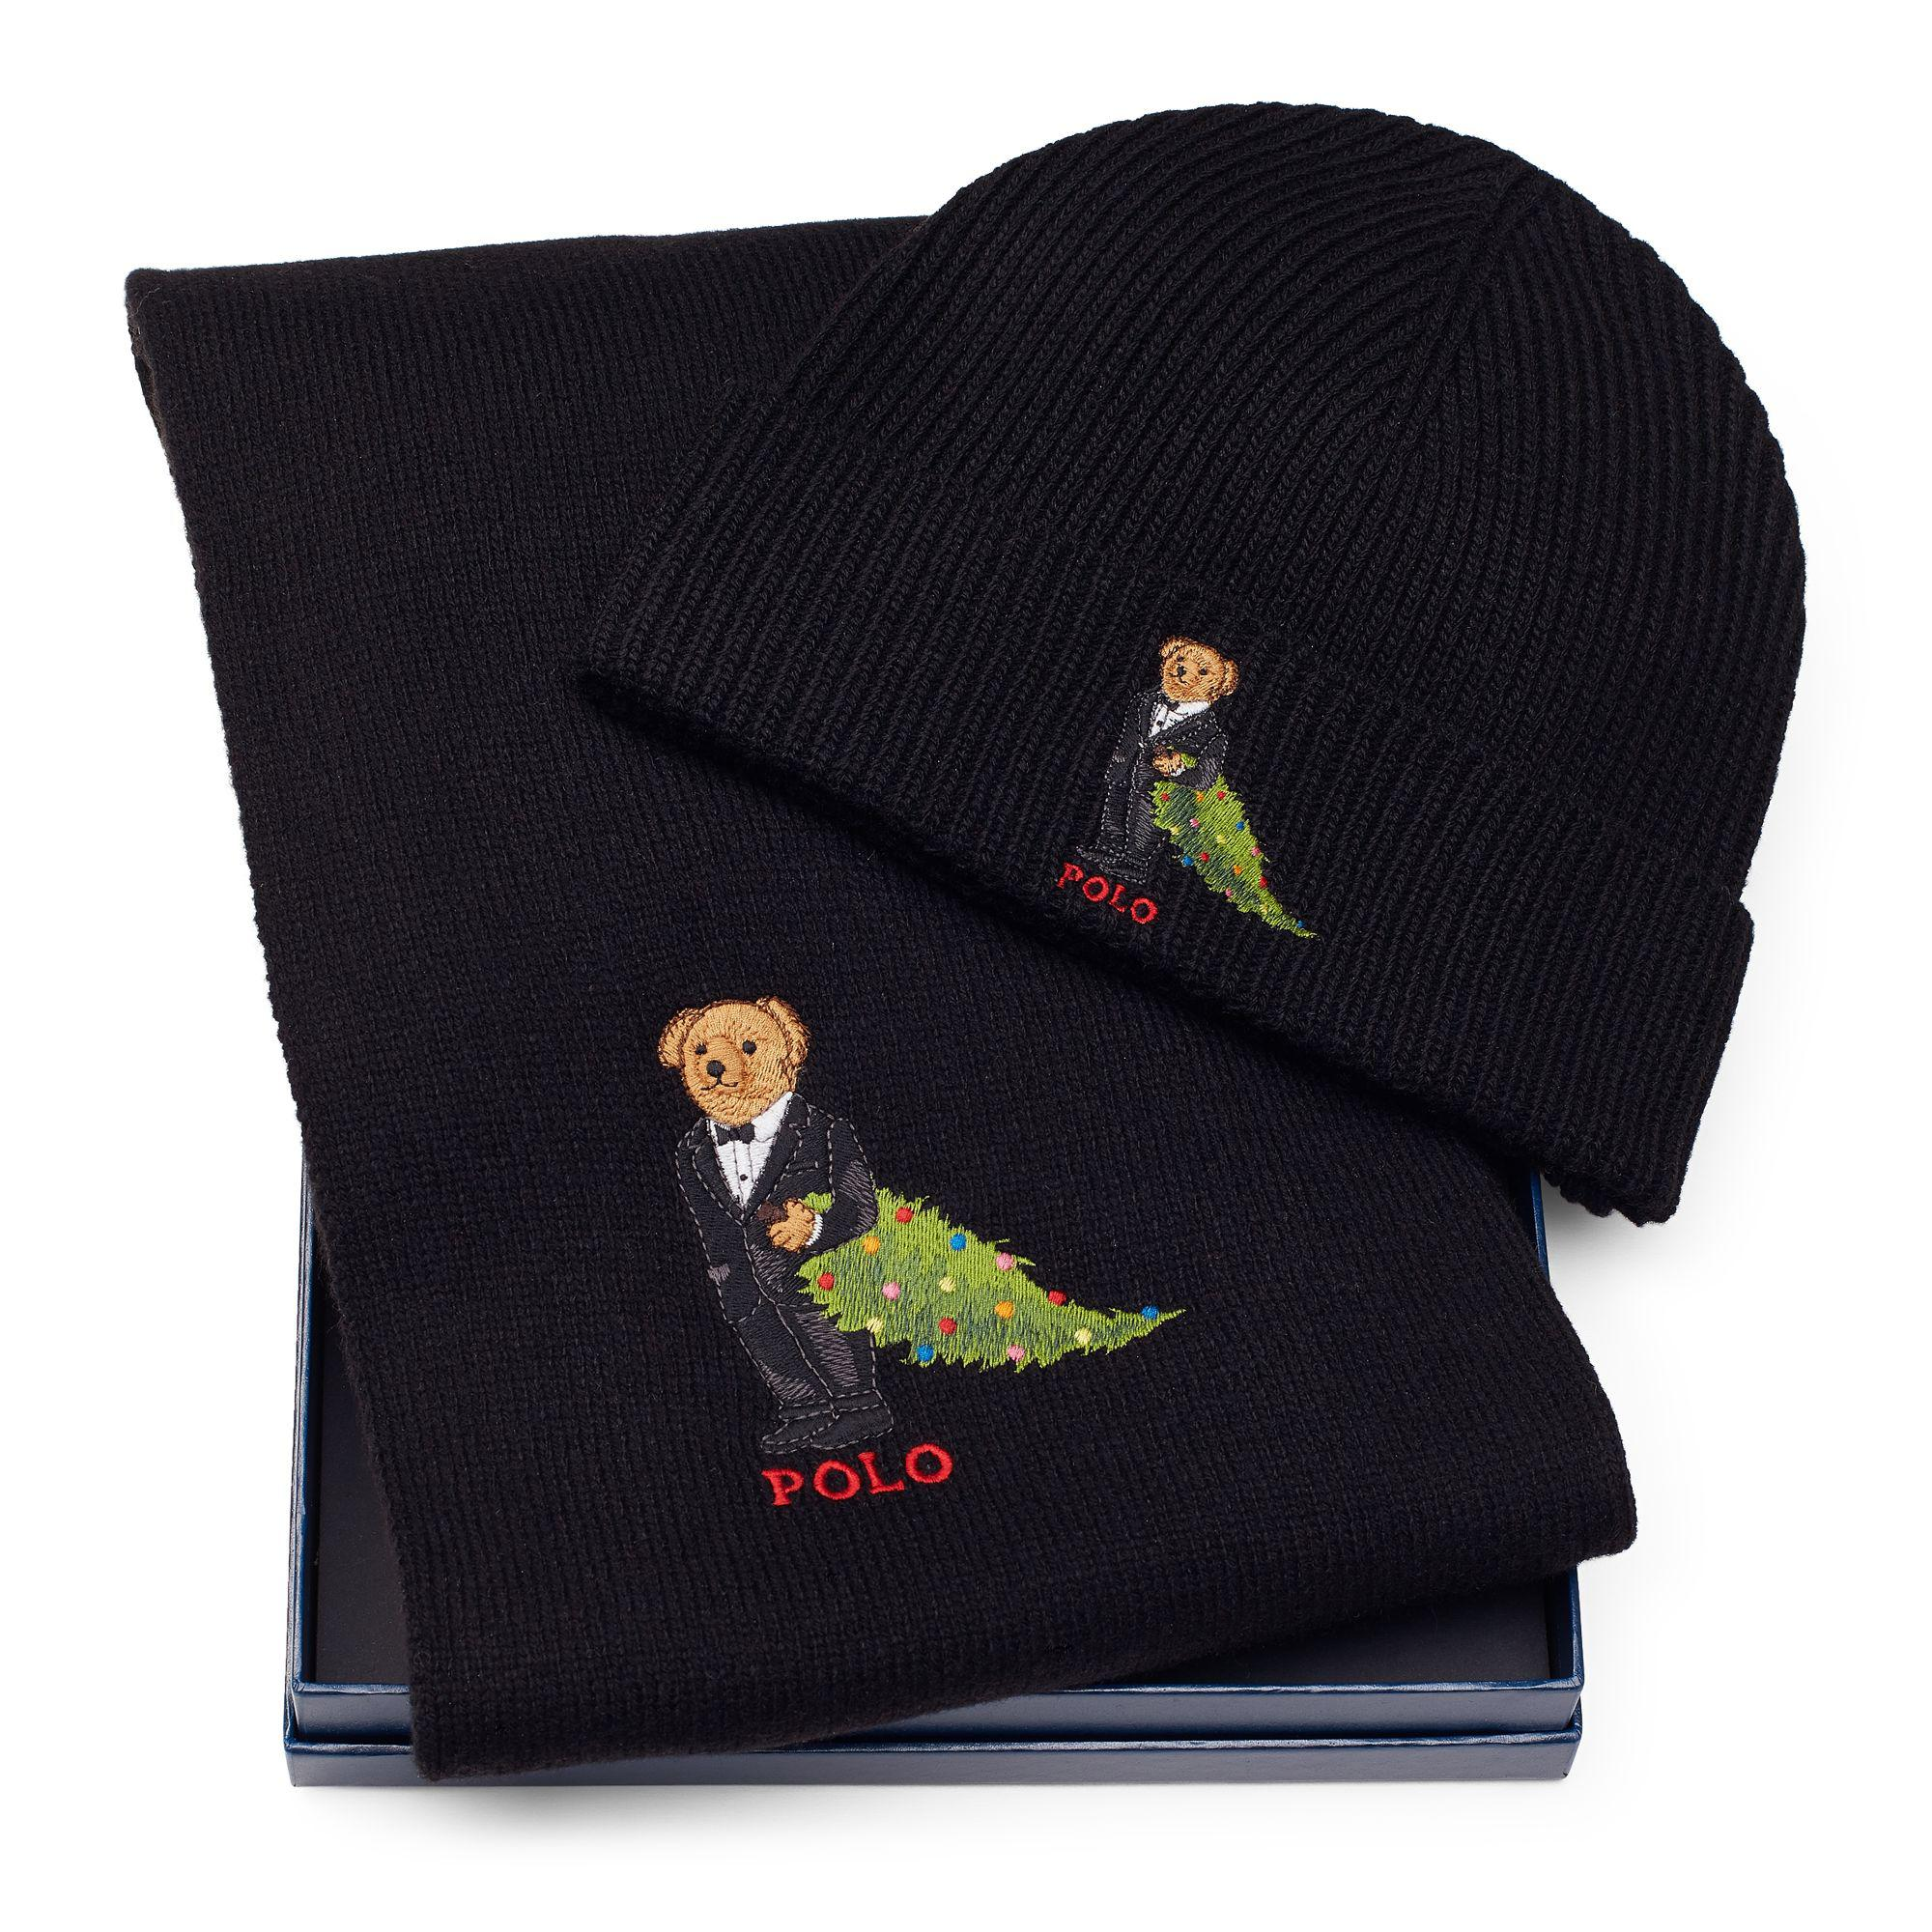 720c63eee37 ... reduced polo ralph lauren. mens black polo bear hat scarf set 35077  53a3b